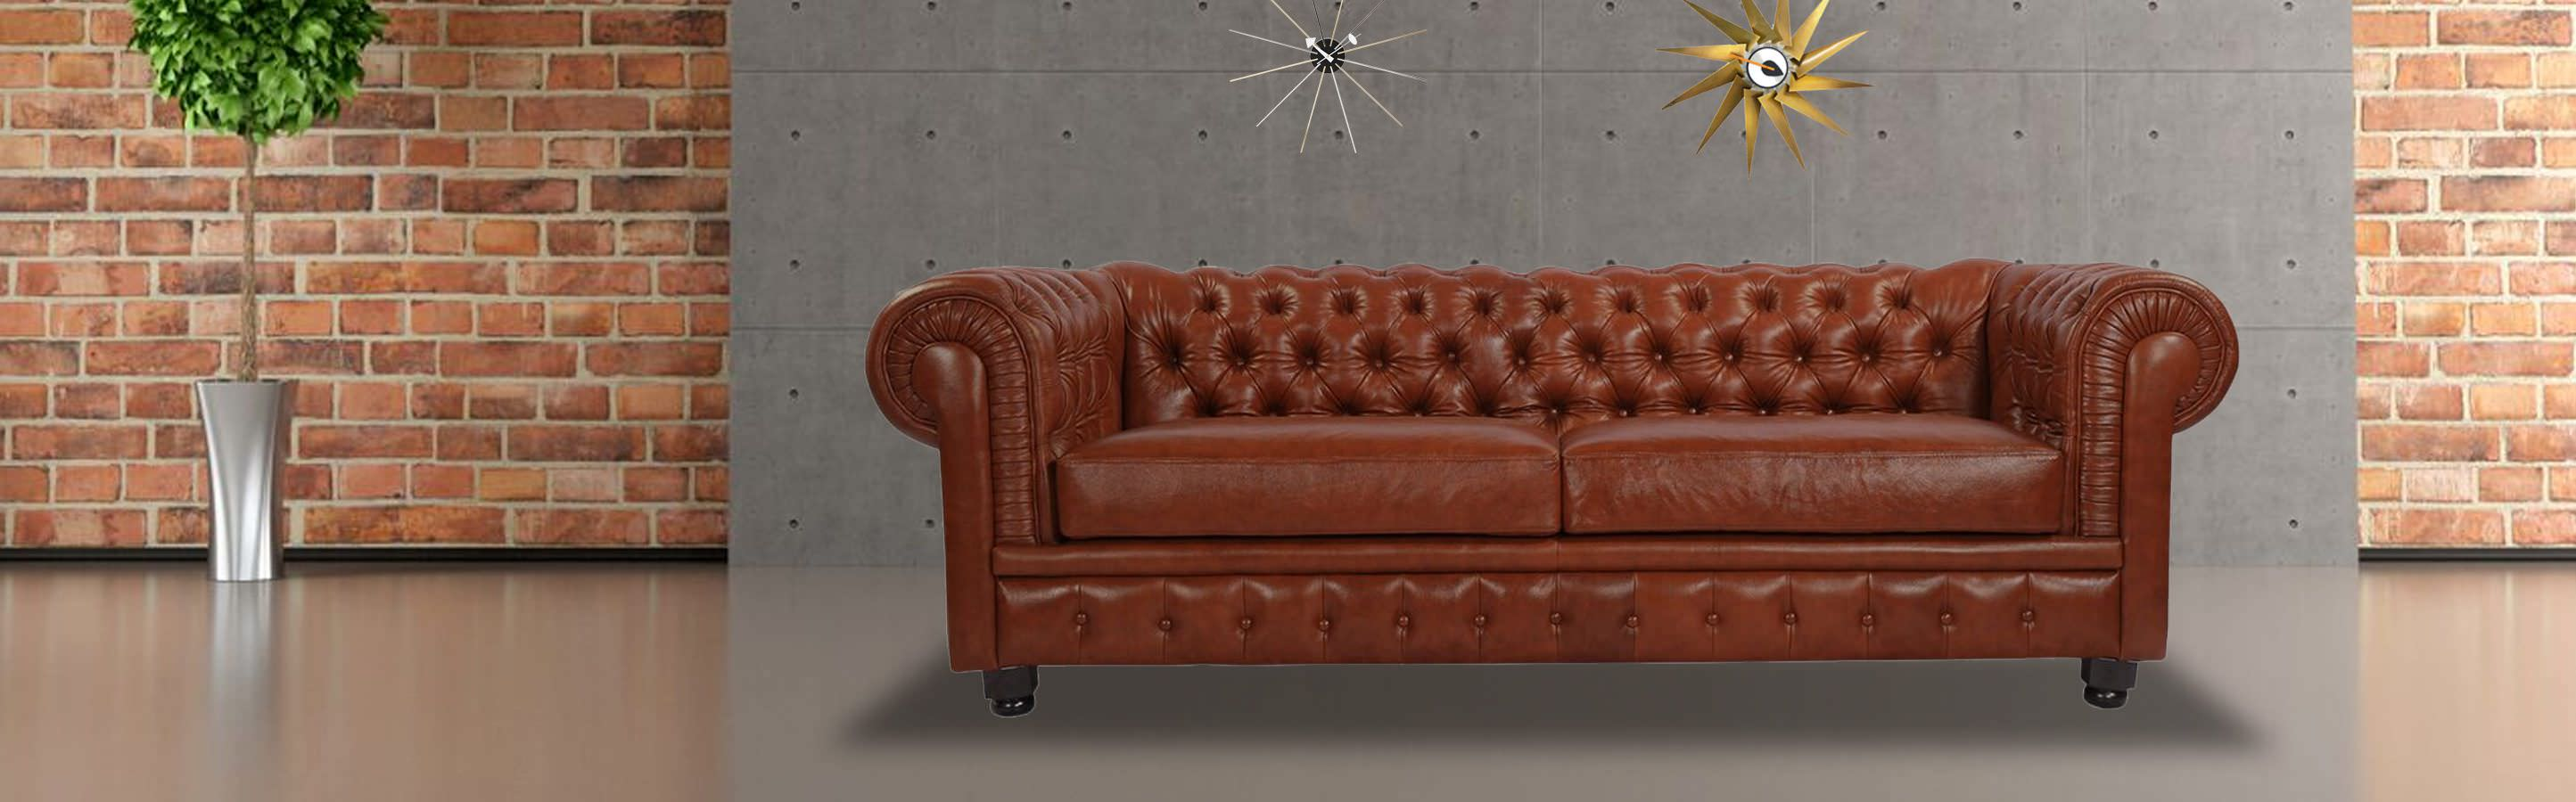 chesterfield sofa earl grey kardiel. Black Bedroom Furniture Sets. Home Design Ideas